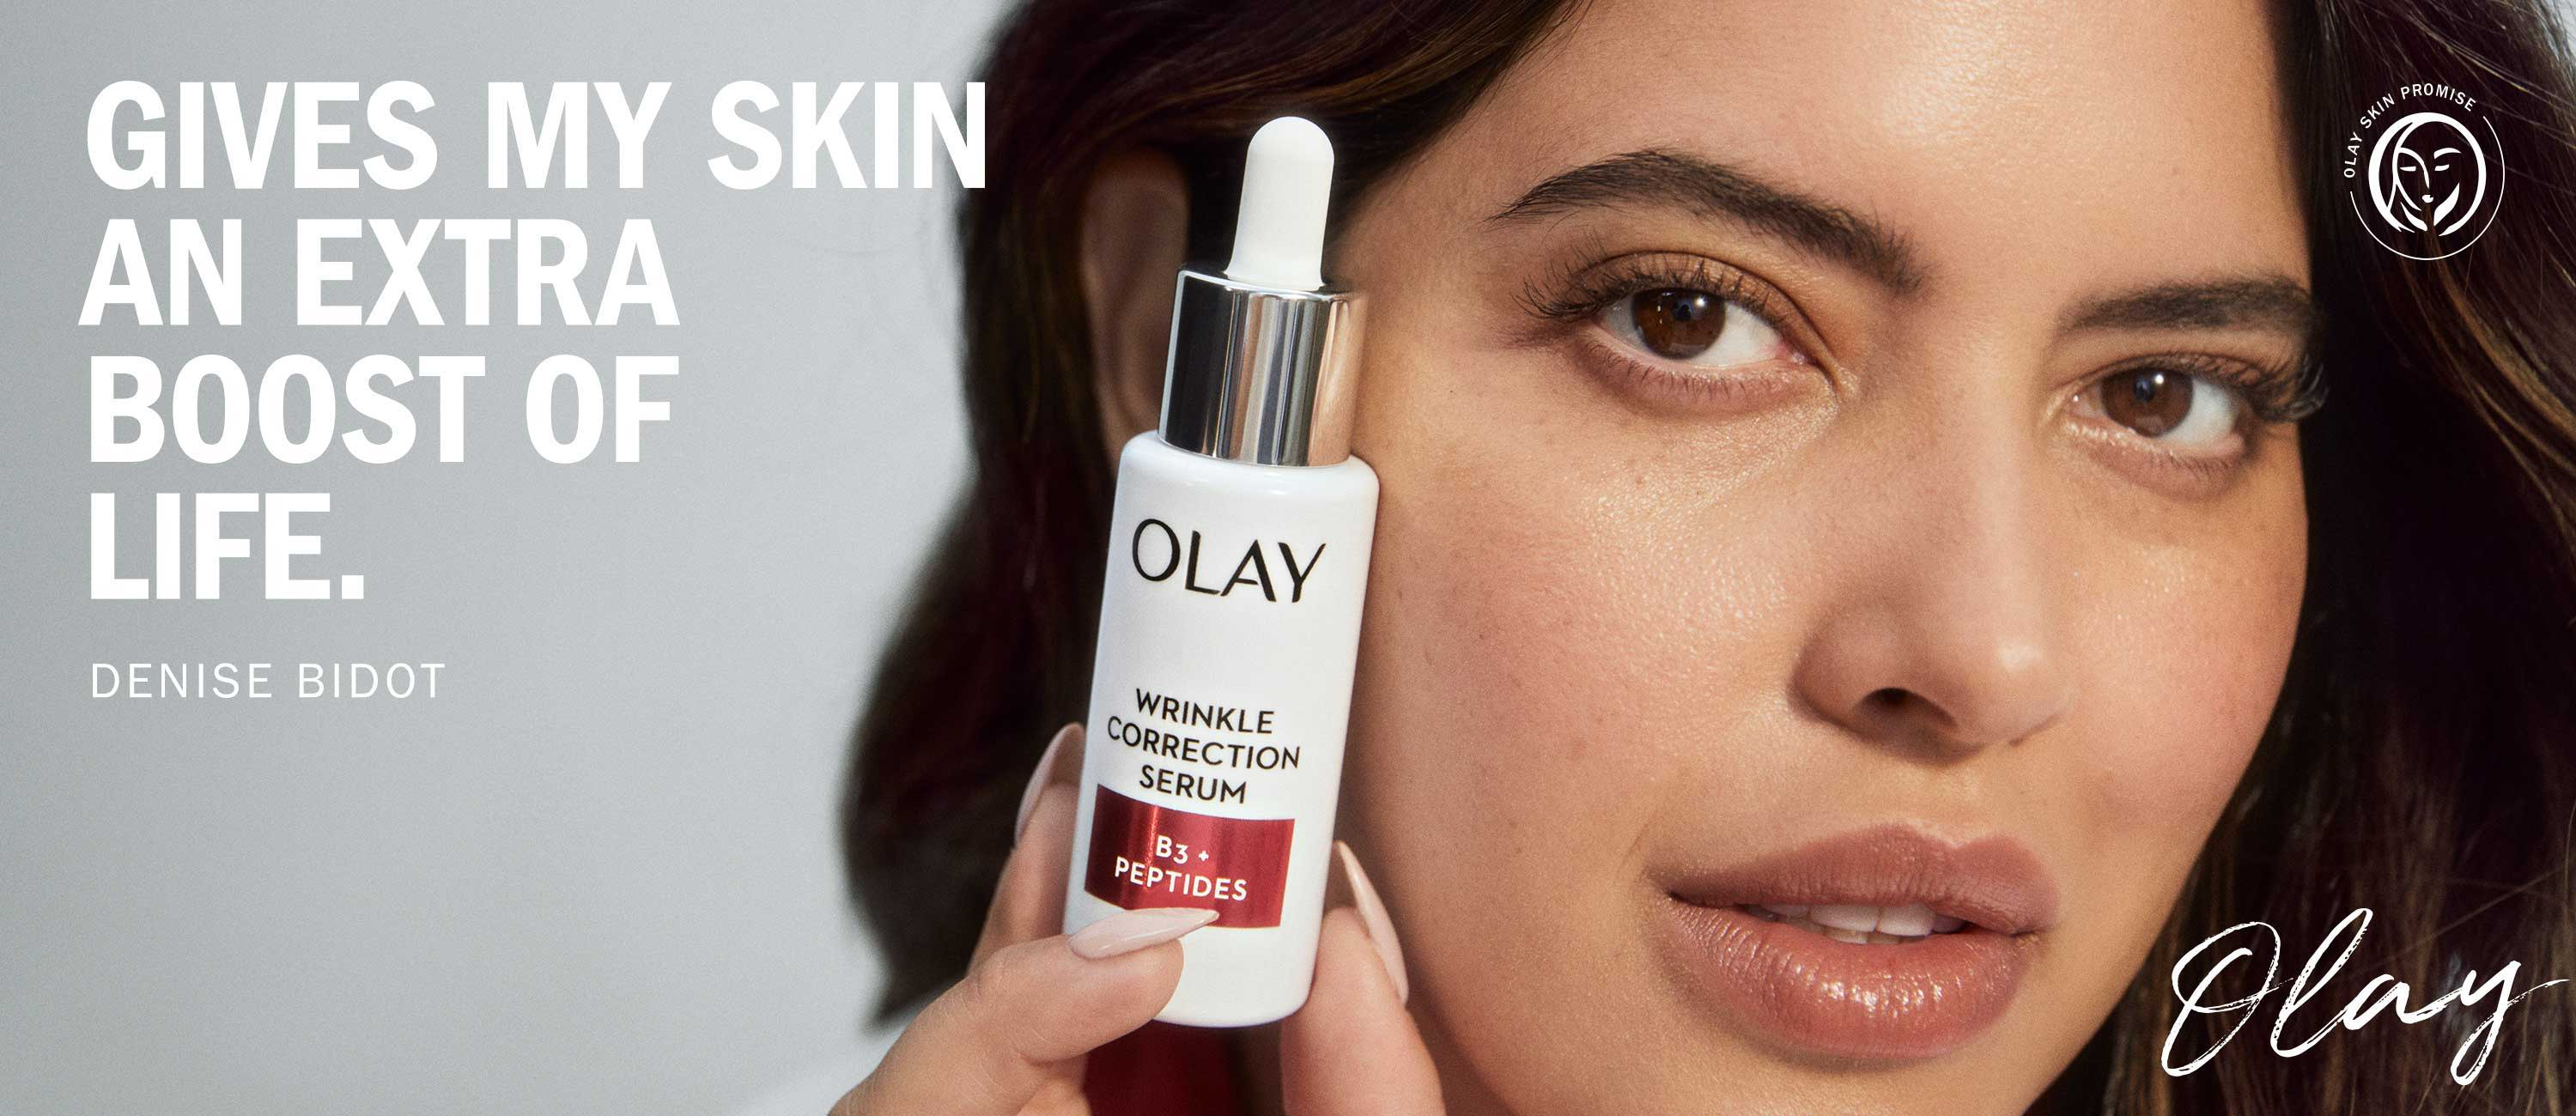 Home page Banner: Denise Bidot.. olay gives m skin an extra boost of life campaign.